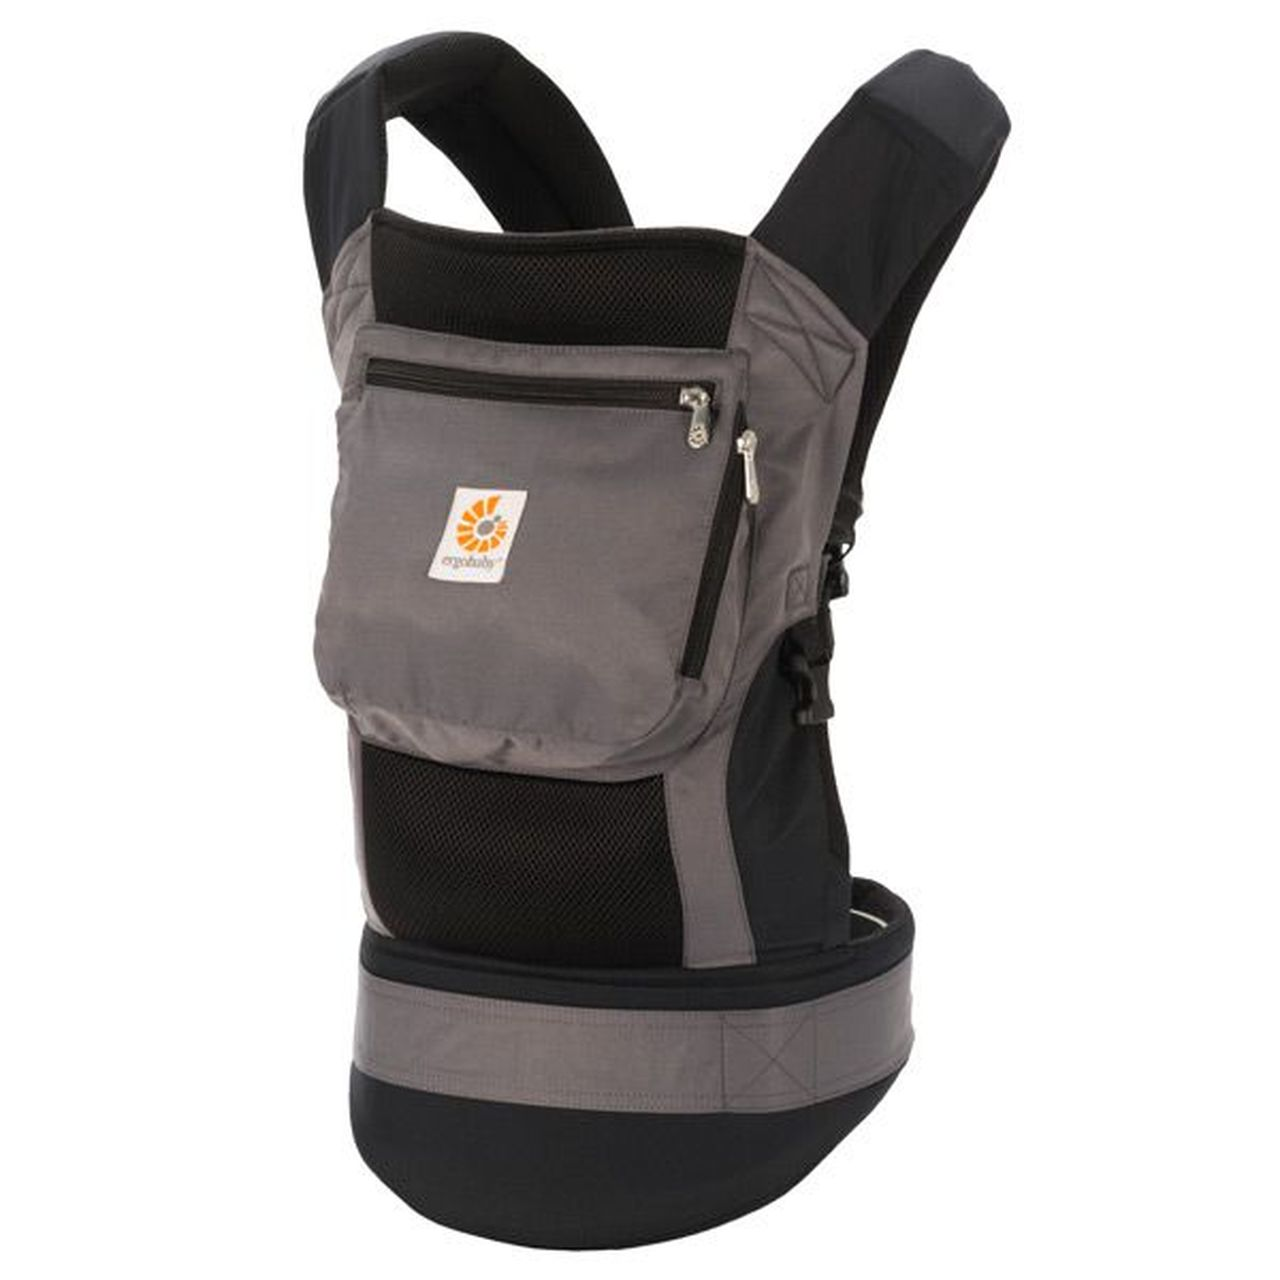 ERGObaby Performance Collection Baby Carrier